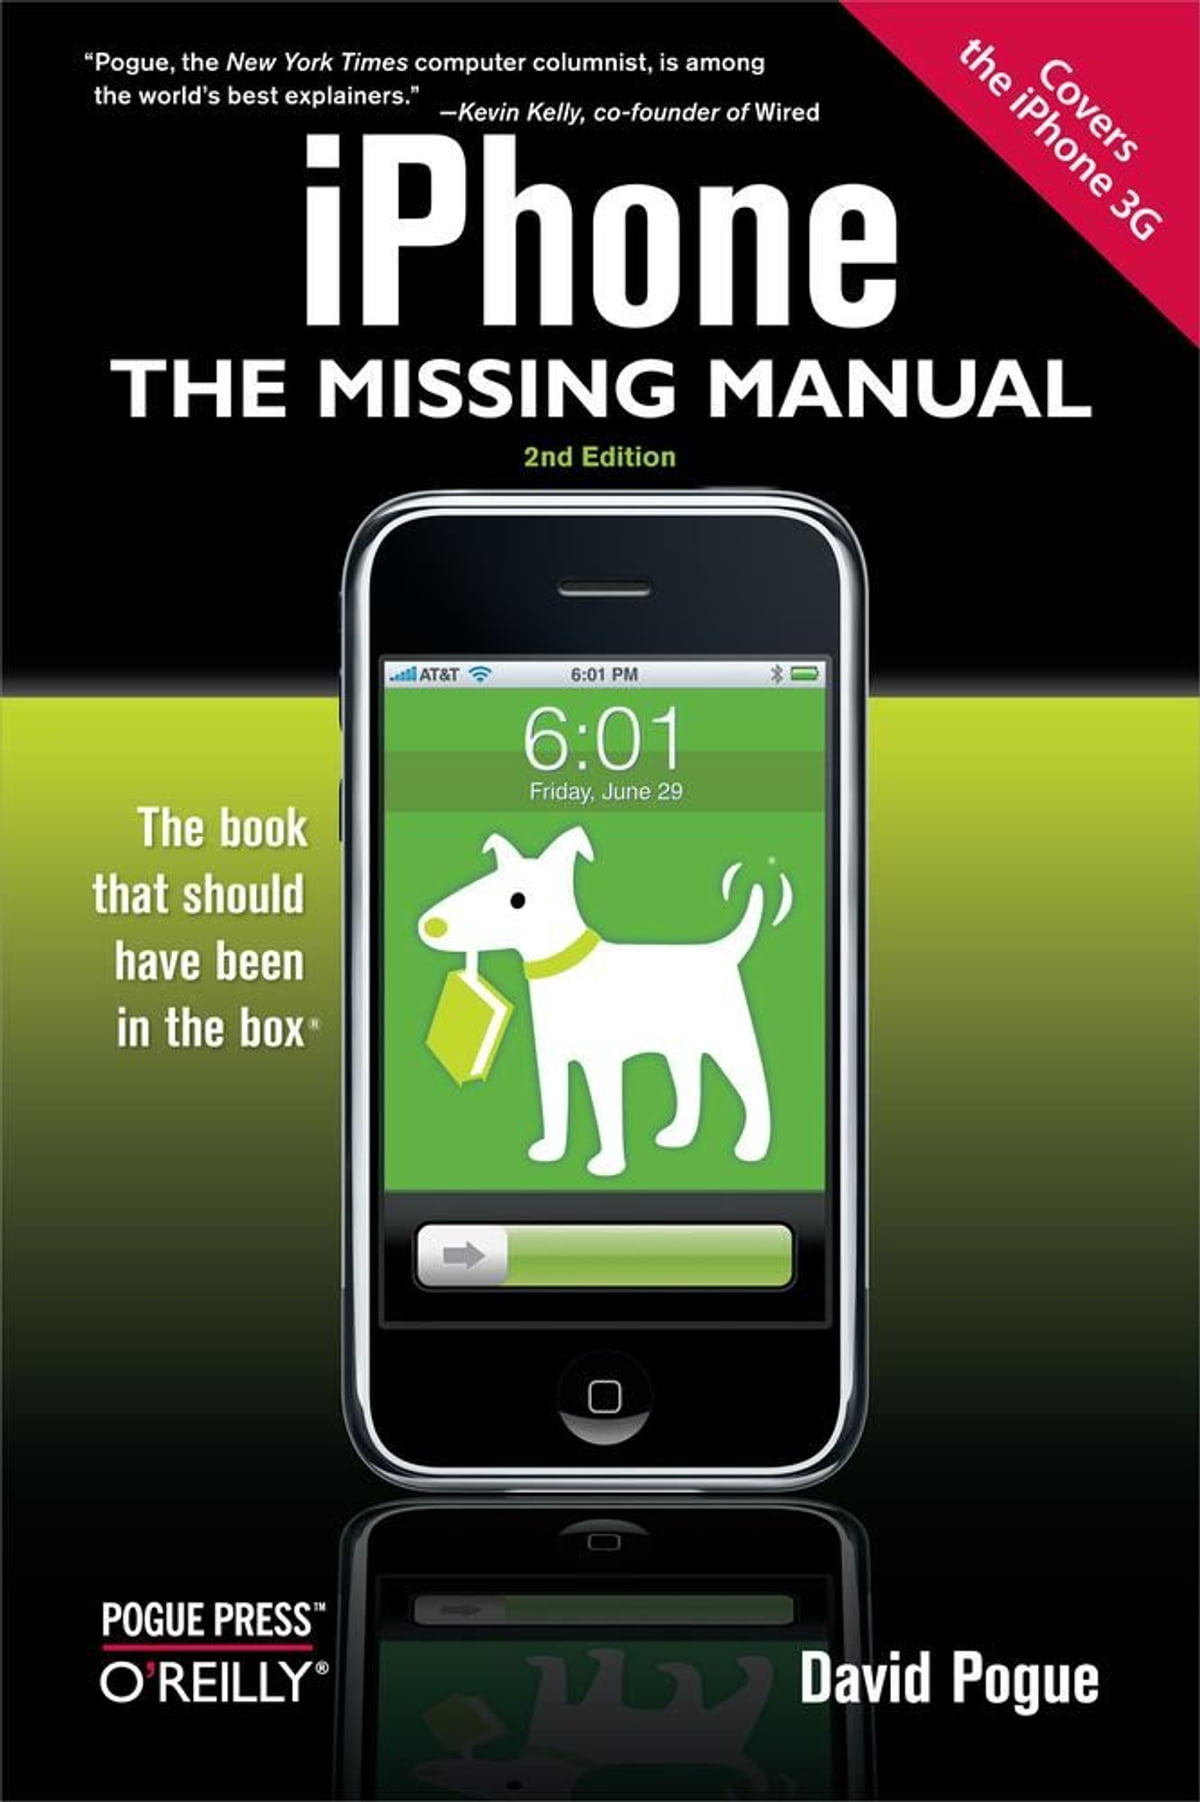 iphone 3g service manual download